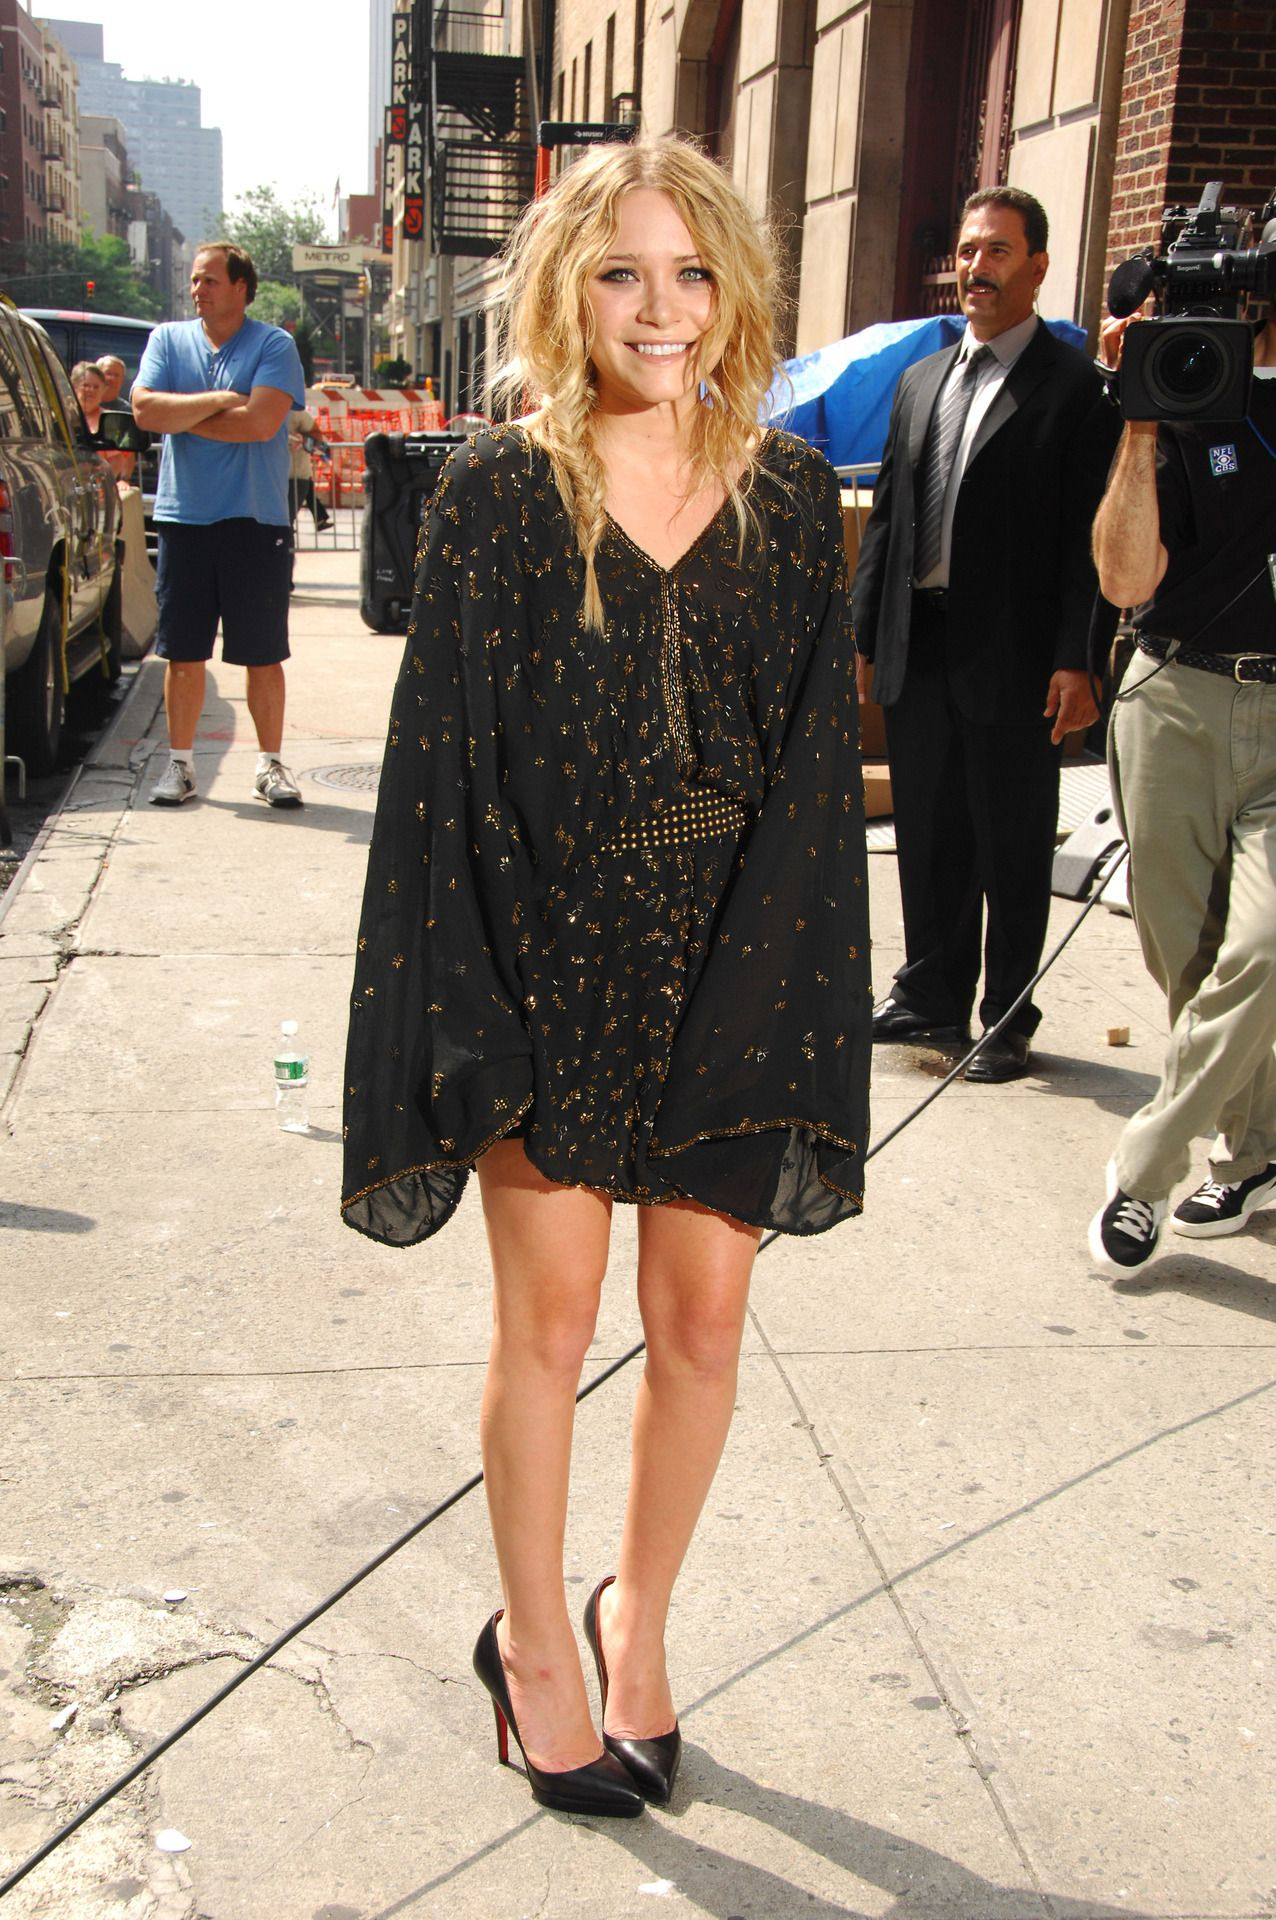 Mary Kate Olsen - 11th and Bleecker